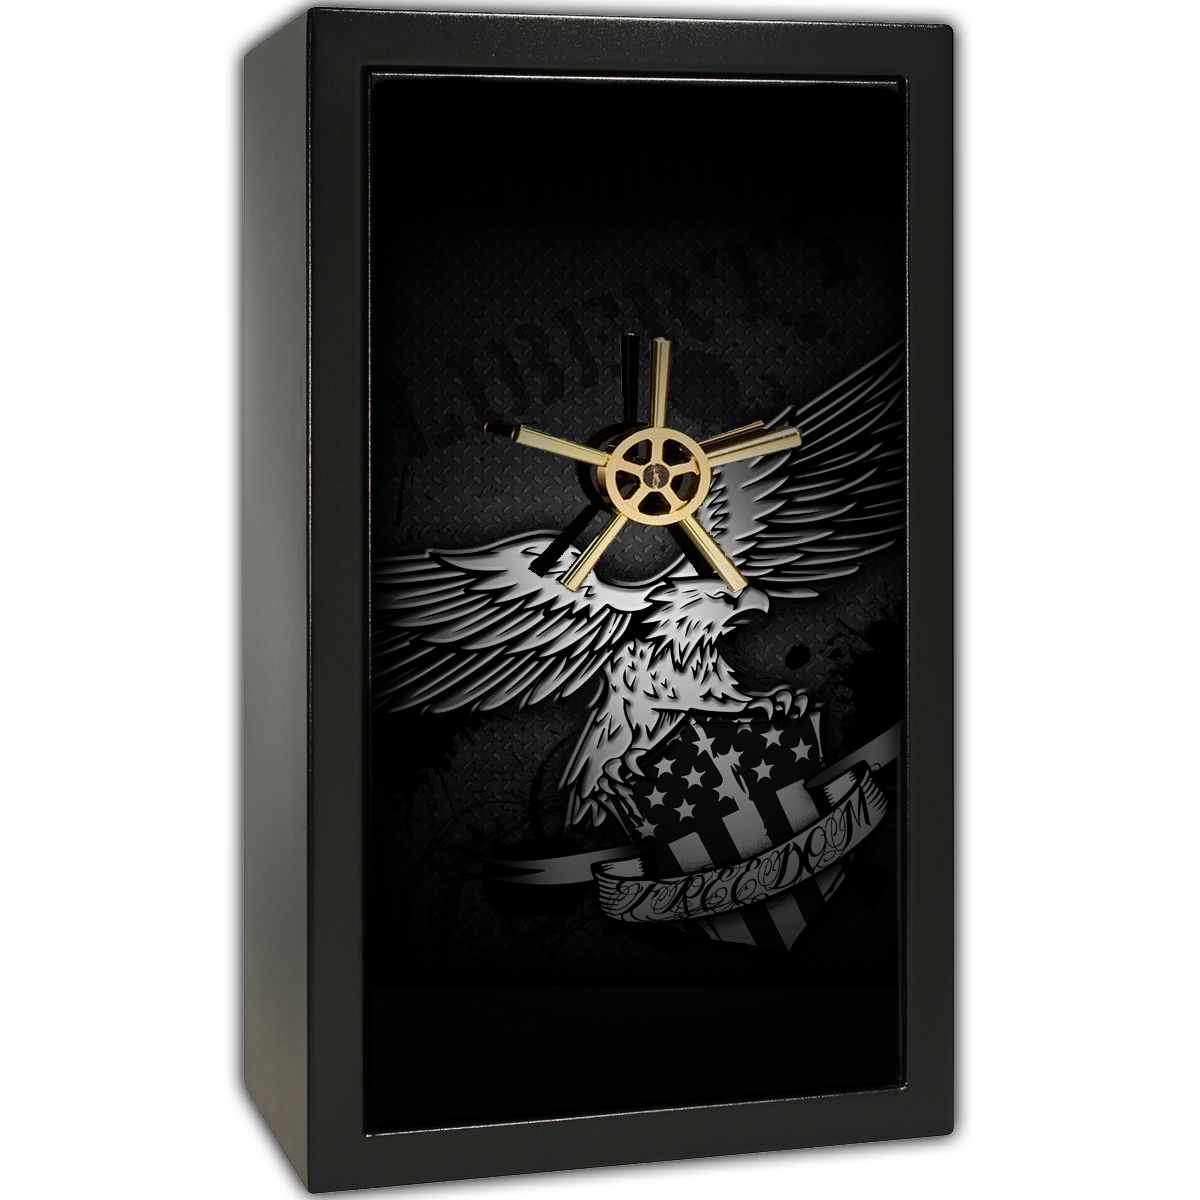 Gun Safe Decal - Large Freedom Liberty Eagle